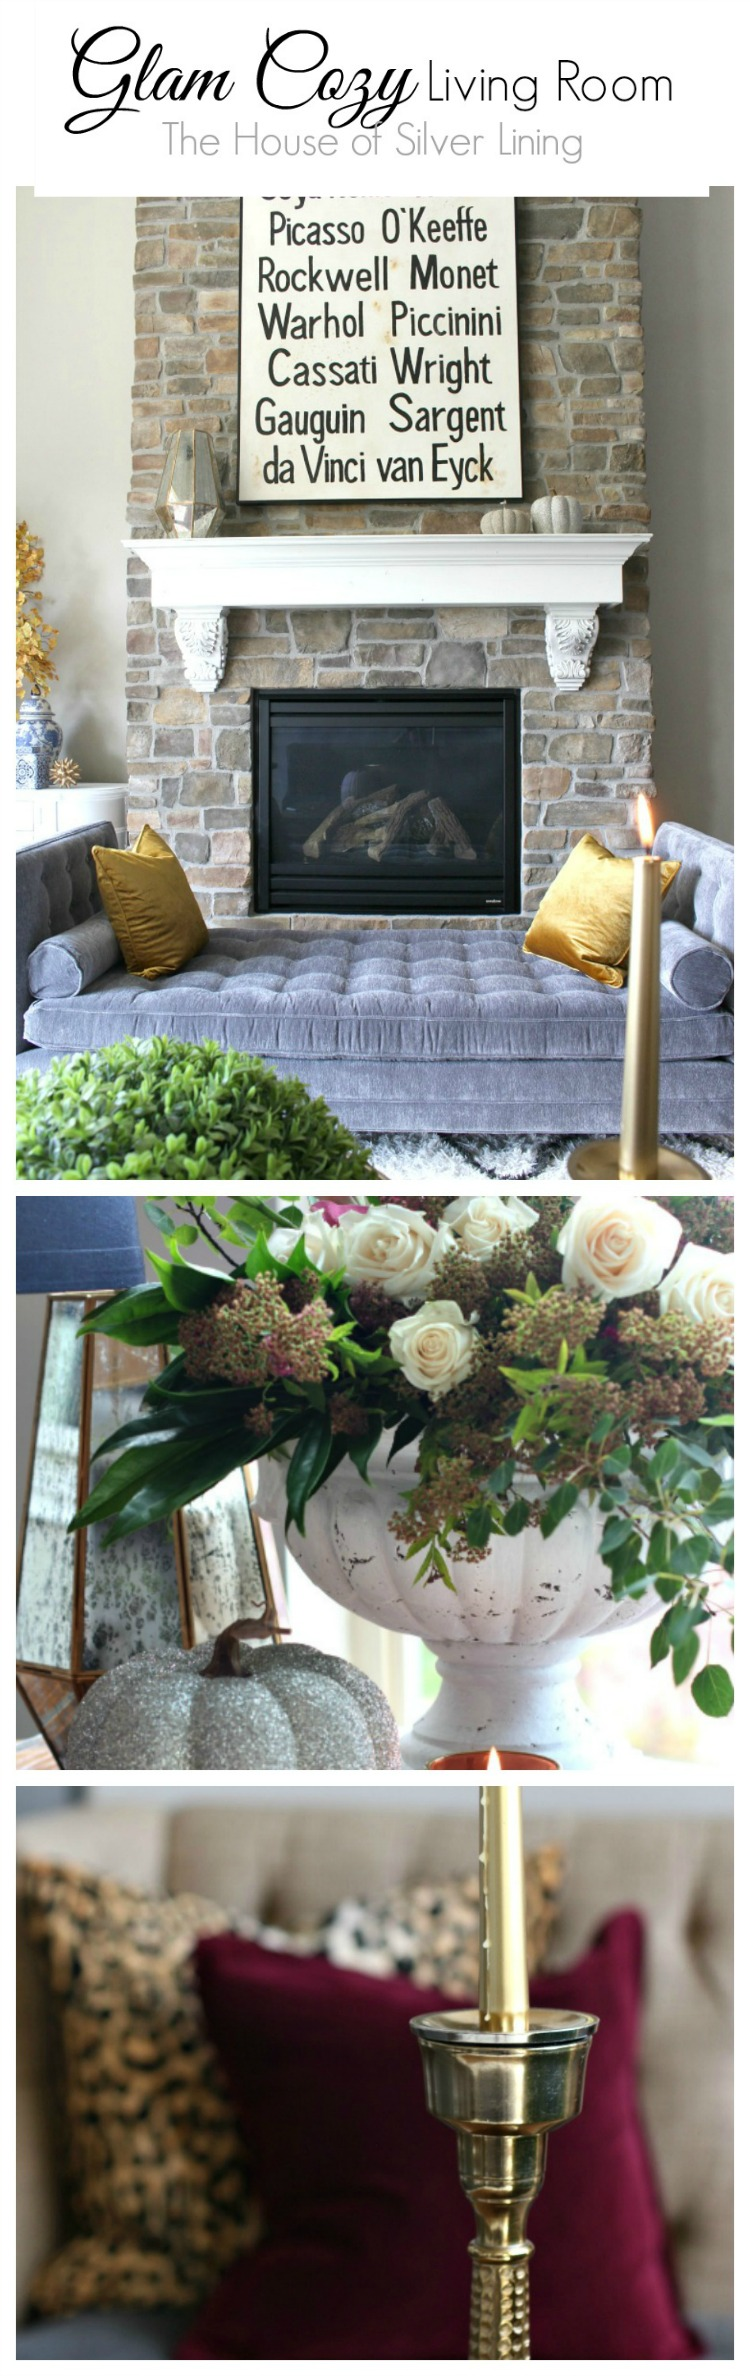 Cozy Living Room: The House Of Silver Lining